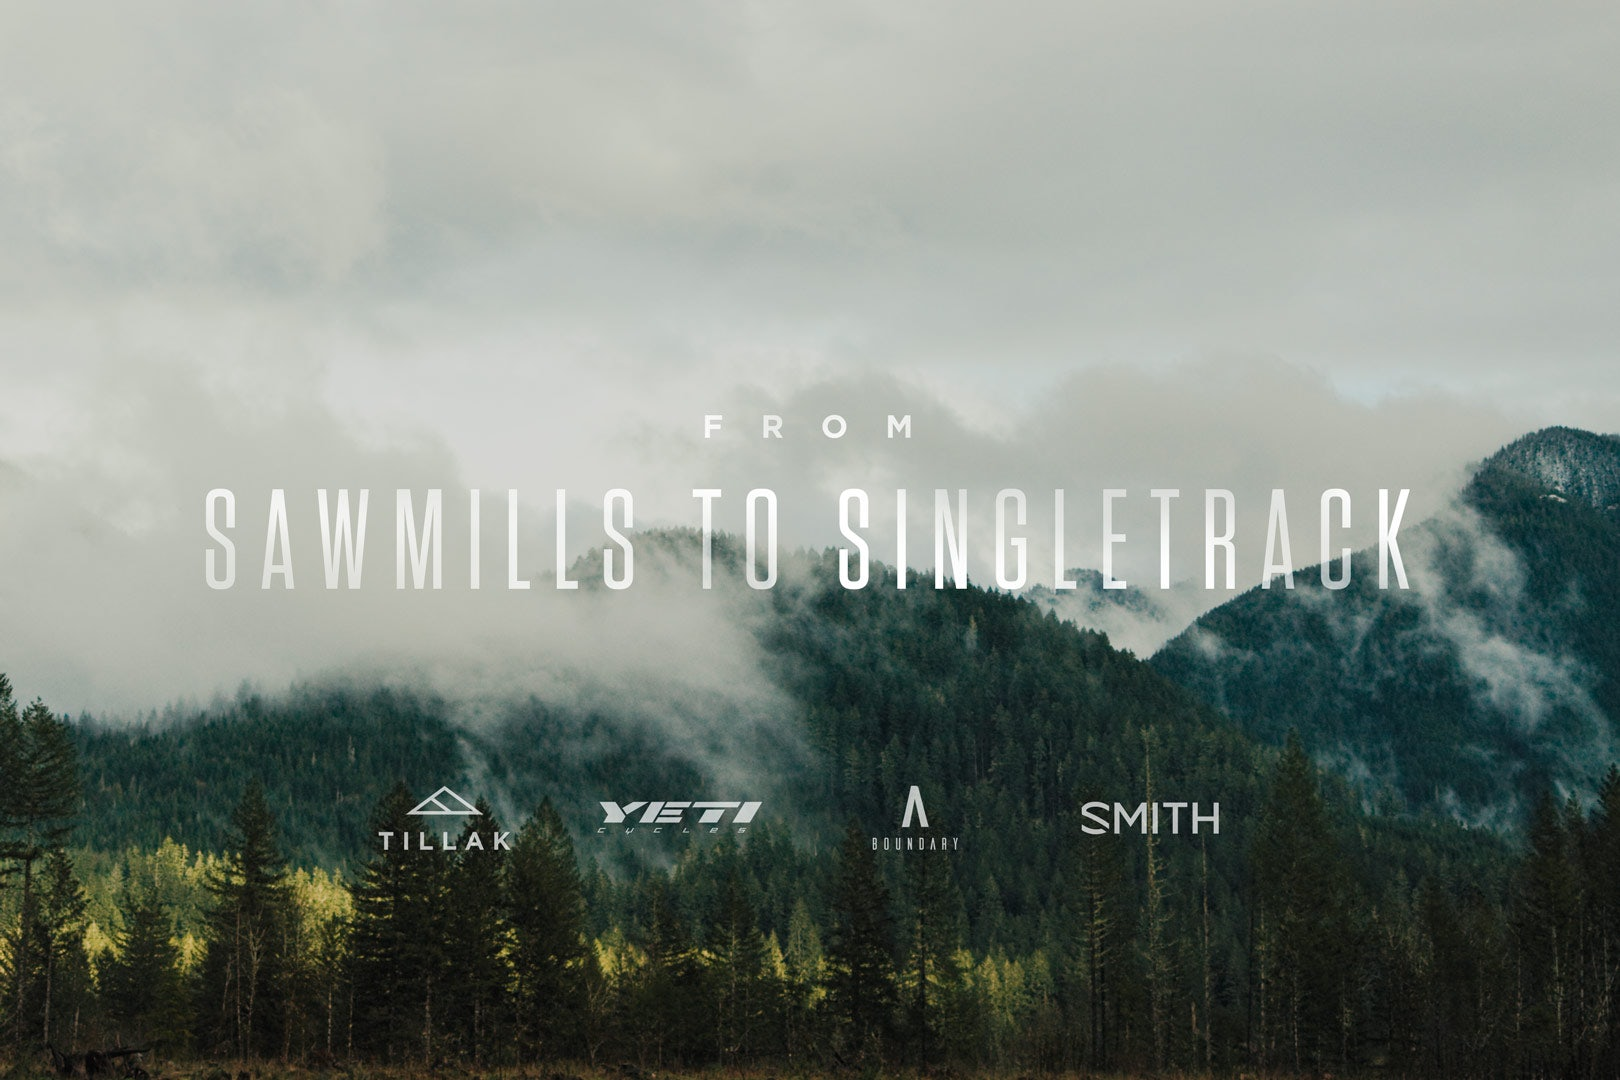 Tillak - From Sawmills to Singletrack